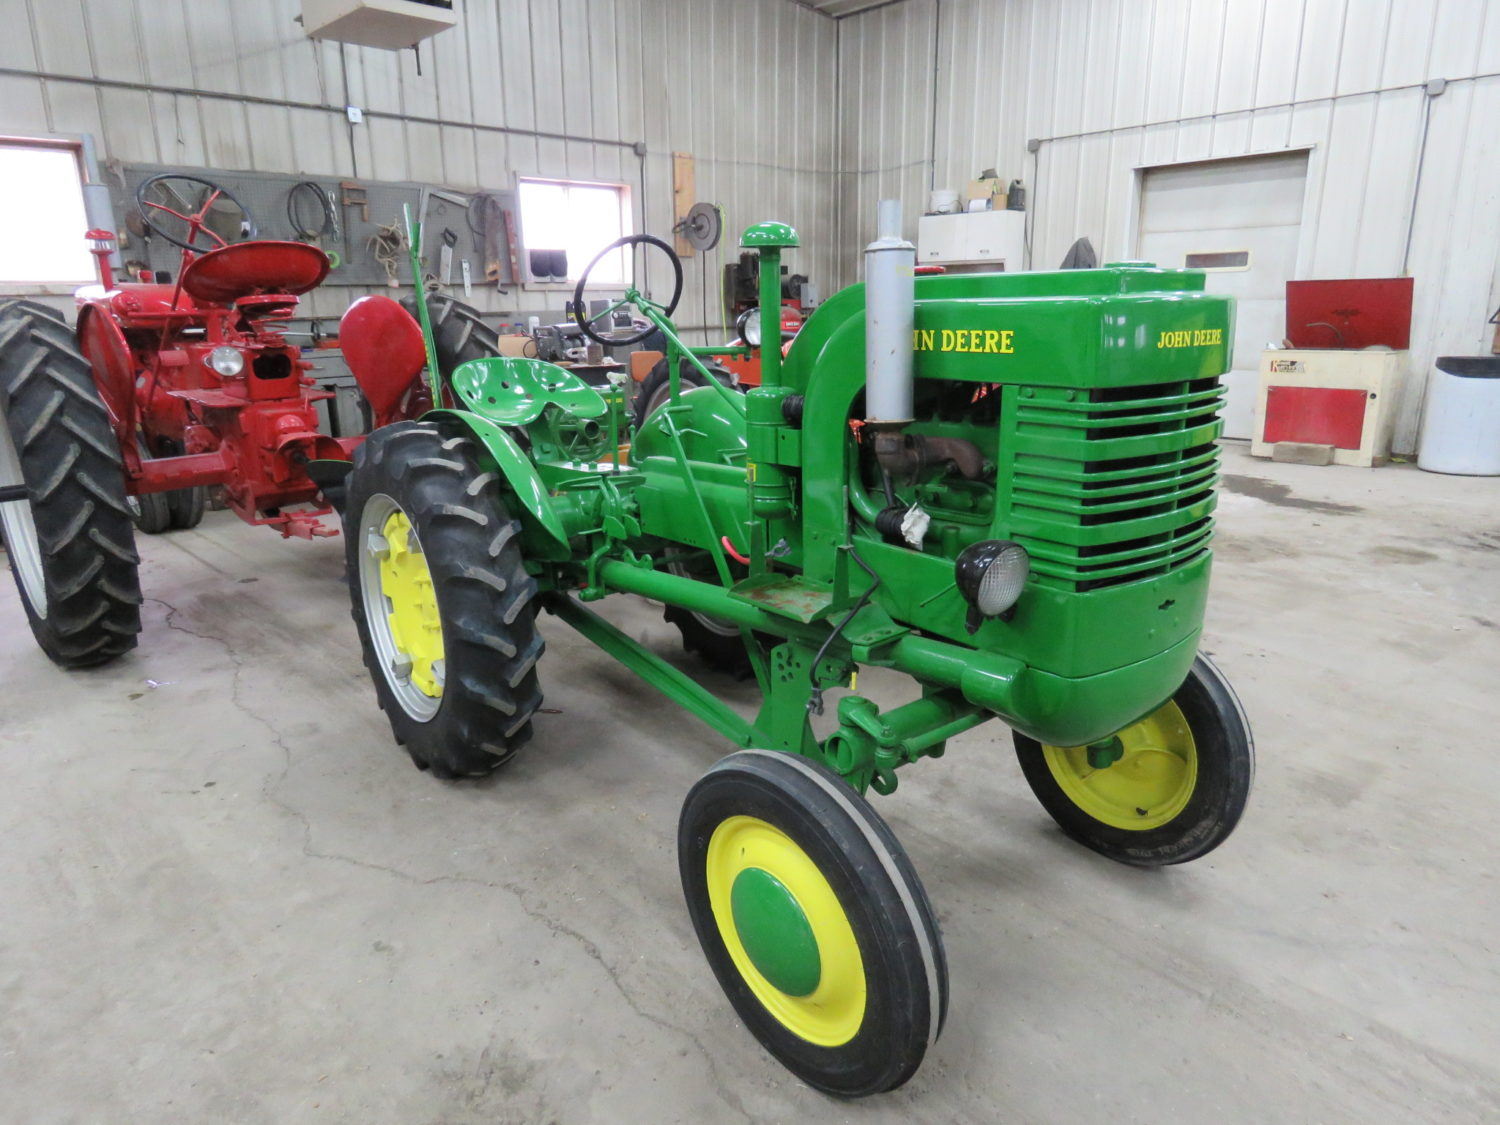 Day 1- Antique Tractors, Farm Equipment, Toys, & More- The James Graham Collection - image 9